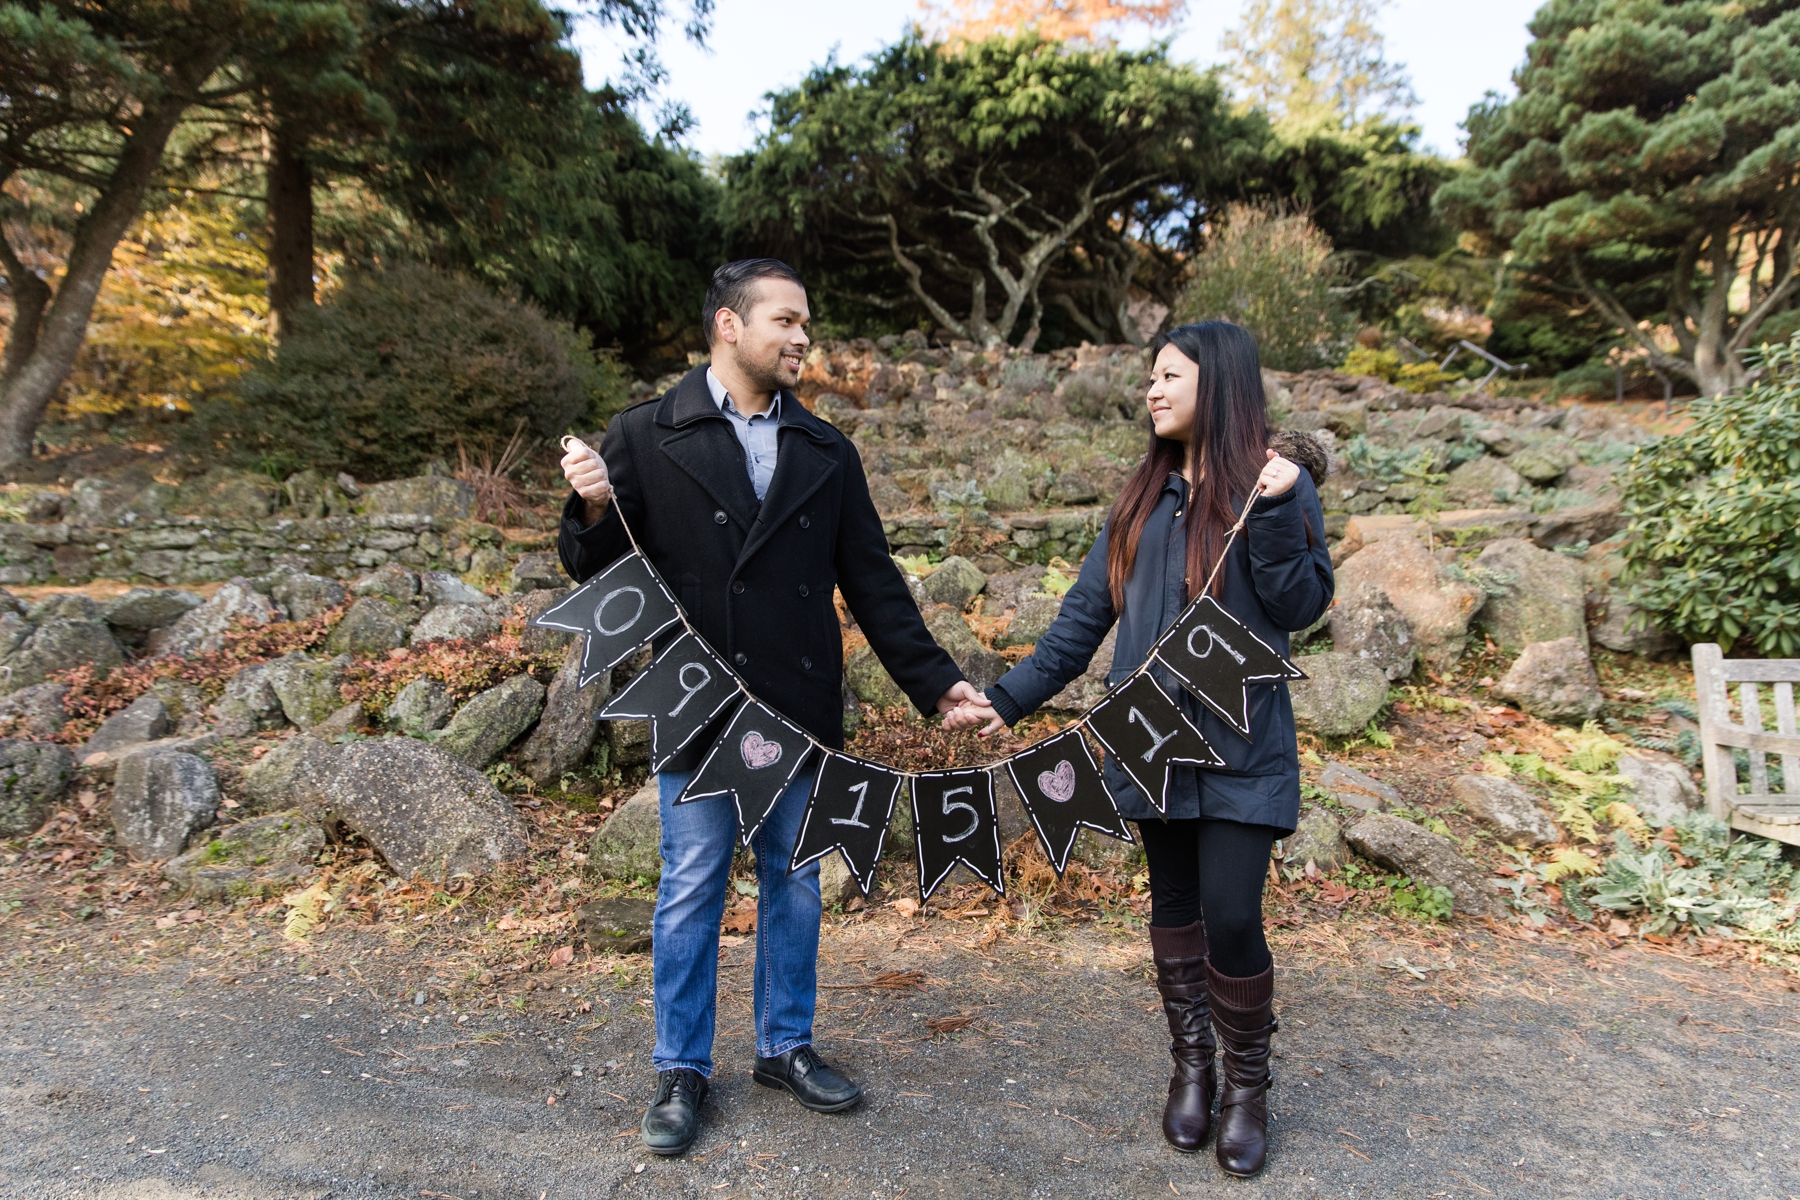 Stephanie and Naveed while holding their Engagement Date